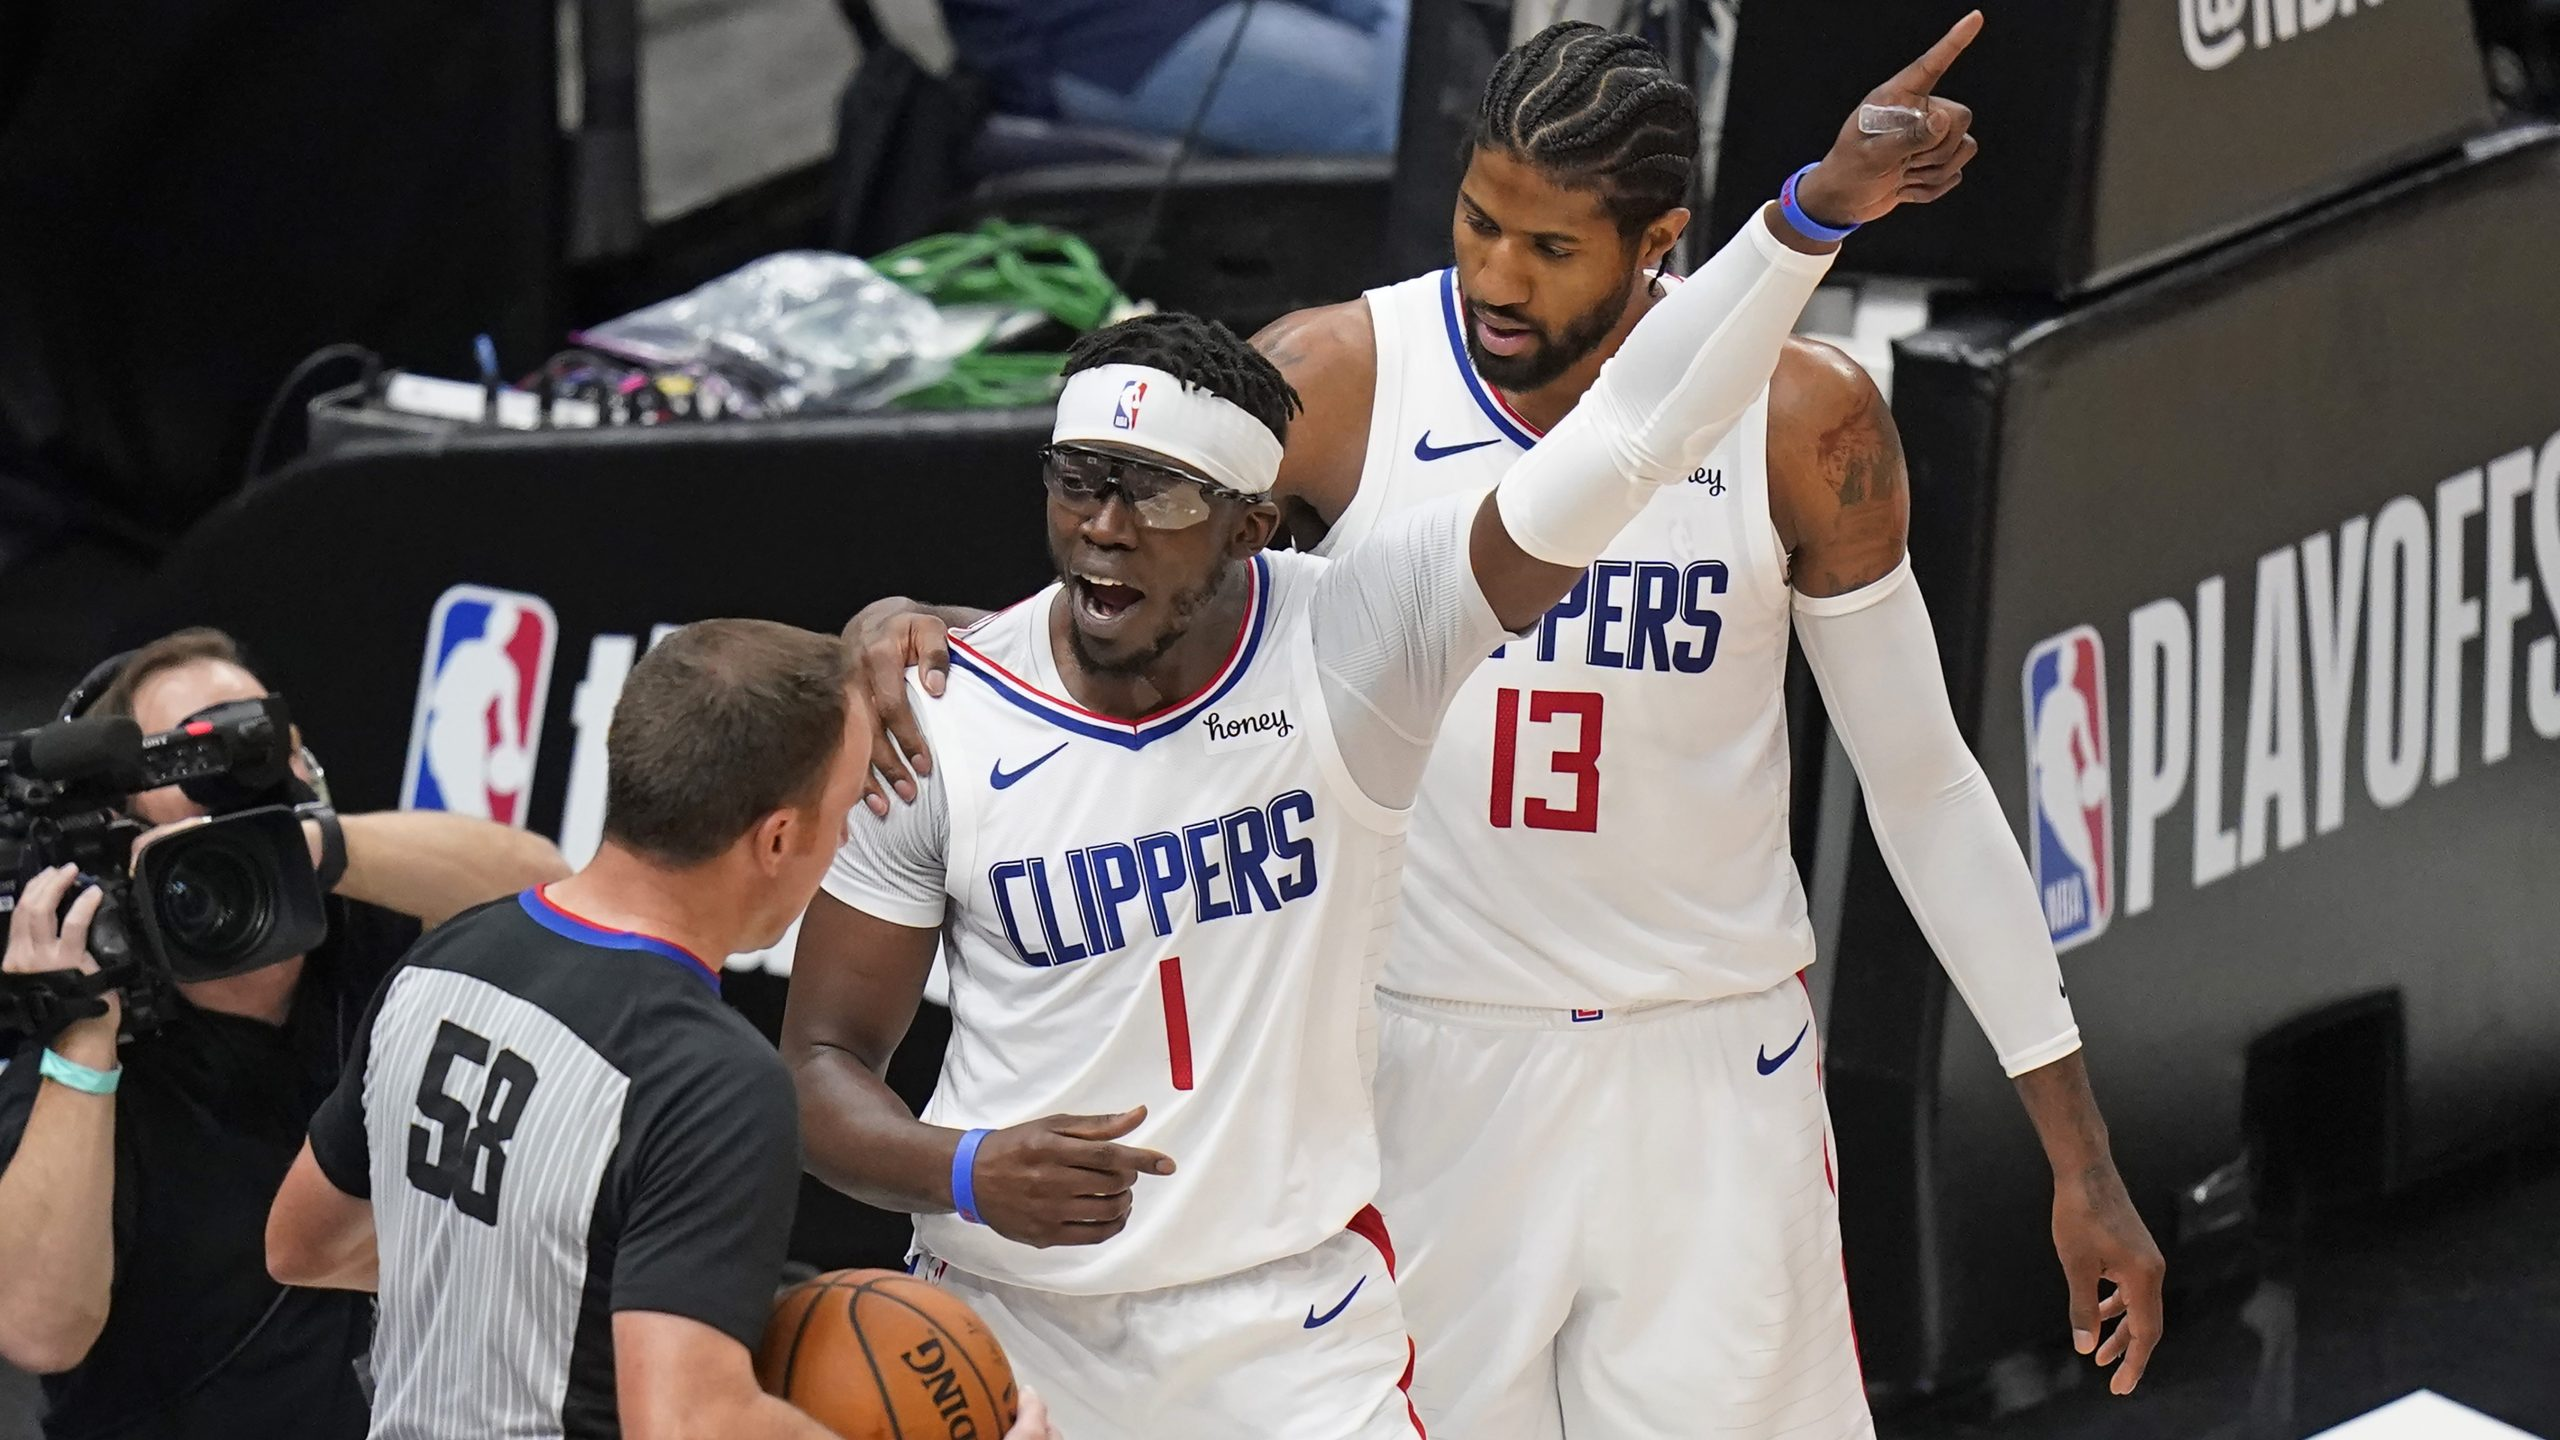 Los Angeles Clippers guard Reggie Jackson (1) argues with referee Josh Tiven (58) during the first half of Game 5 of the team's second-round NBA basketball playoff series against the Utah Jazz on June 16, 2021, in Salt Lake City. (Rick Bowmer / Associated Press)